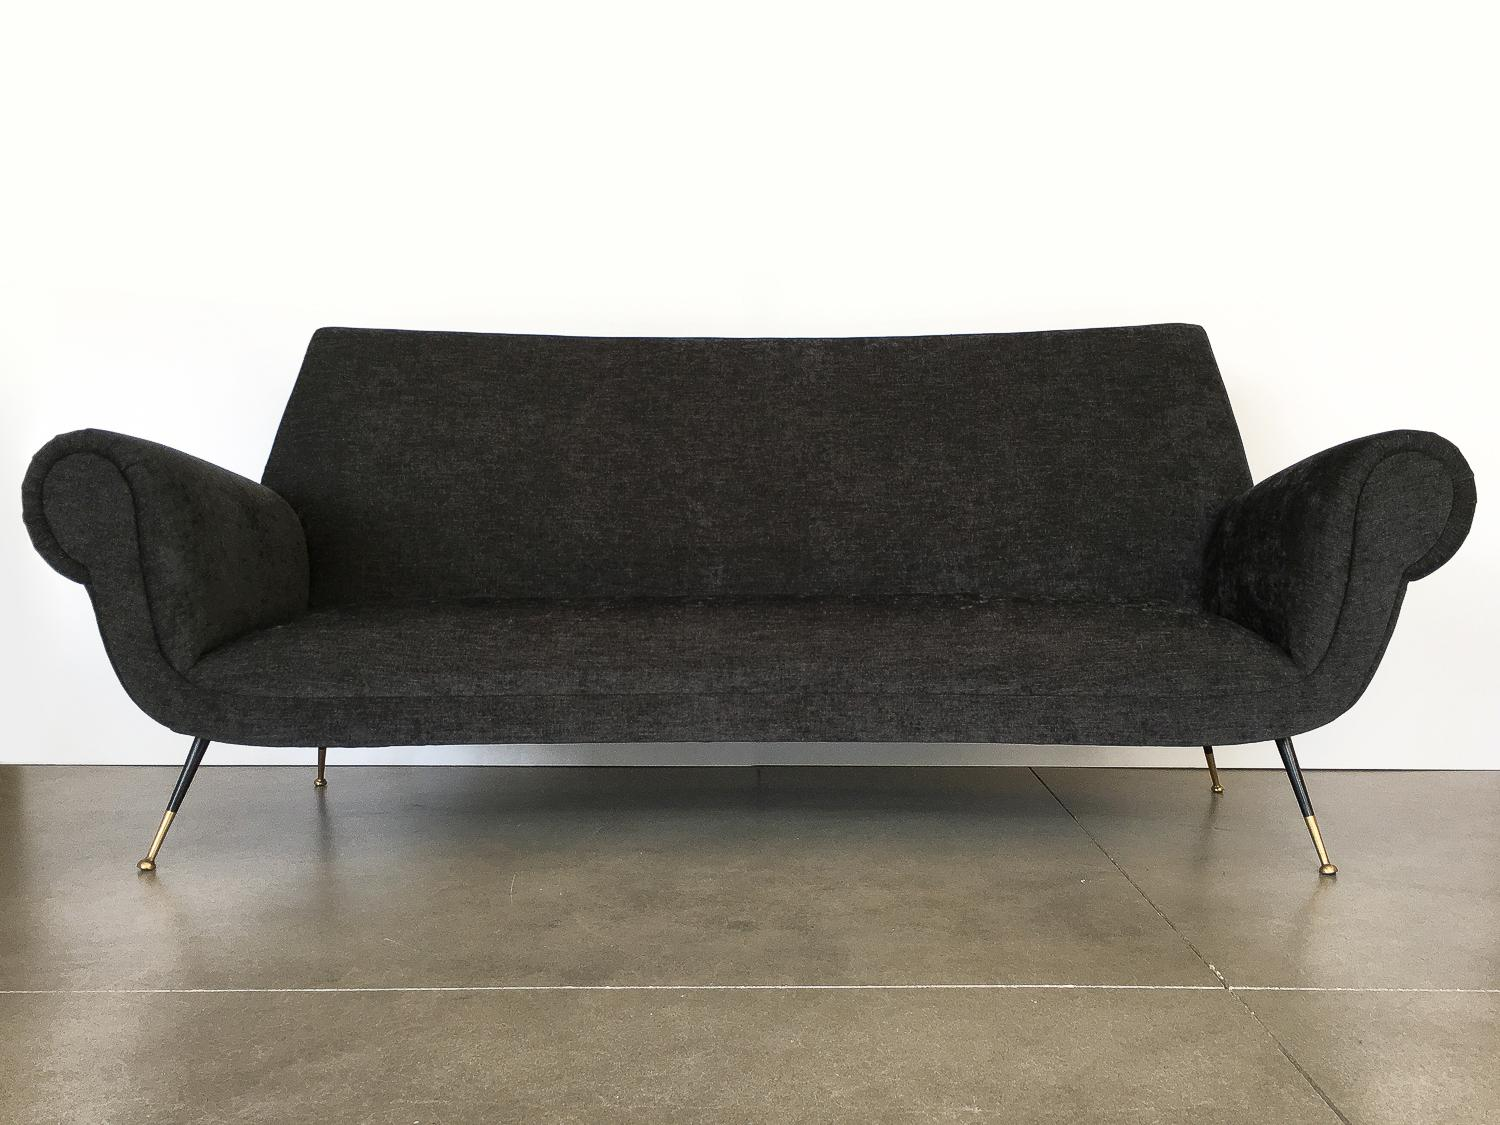 Superieur Italian Italian Midcentury Sofa By Gigi Radice For Minotti For Sale   Image  3 Of 13